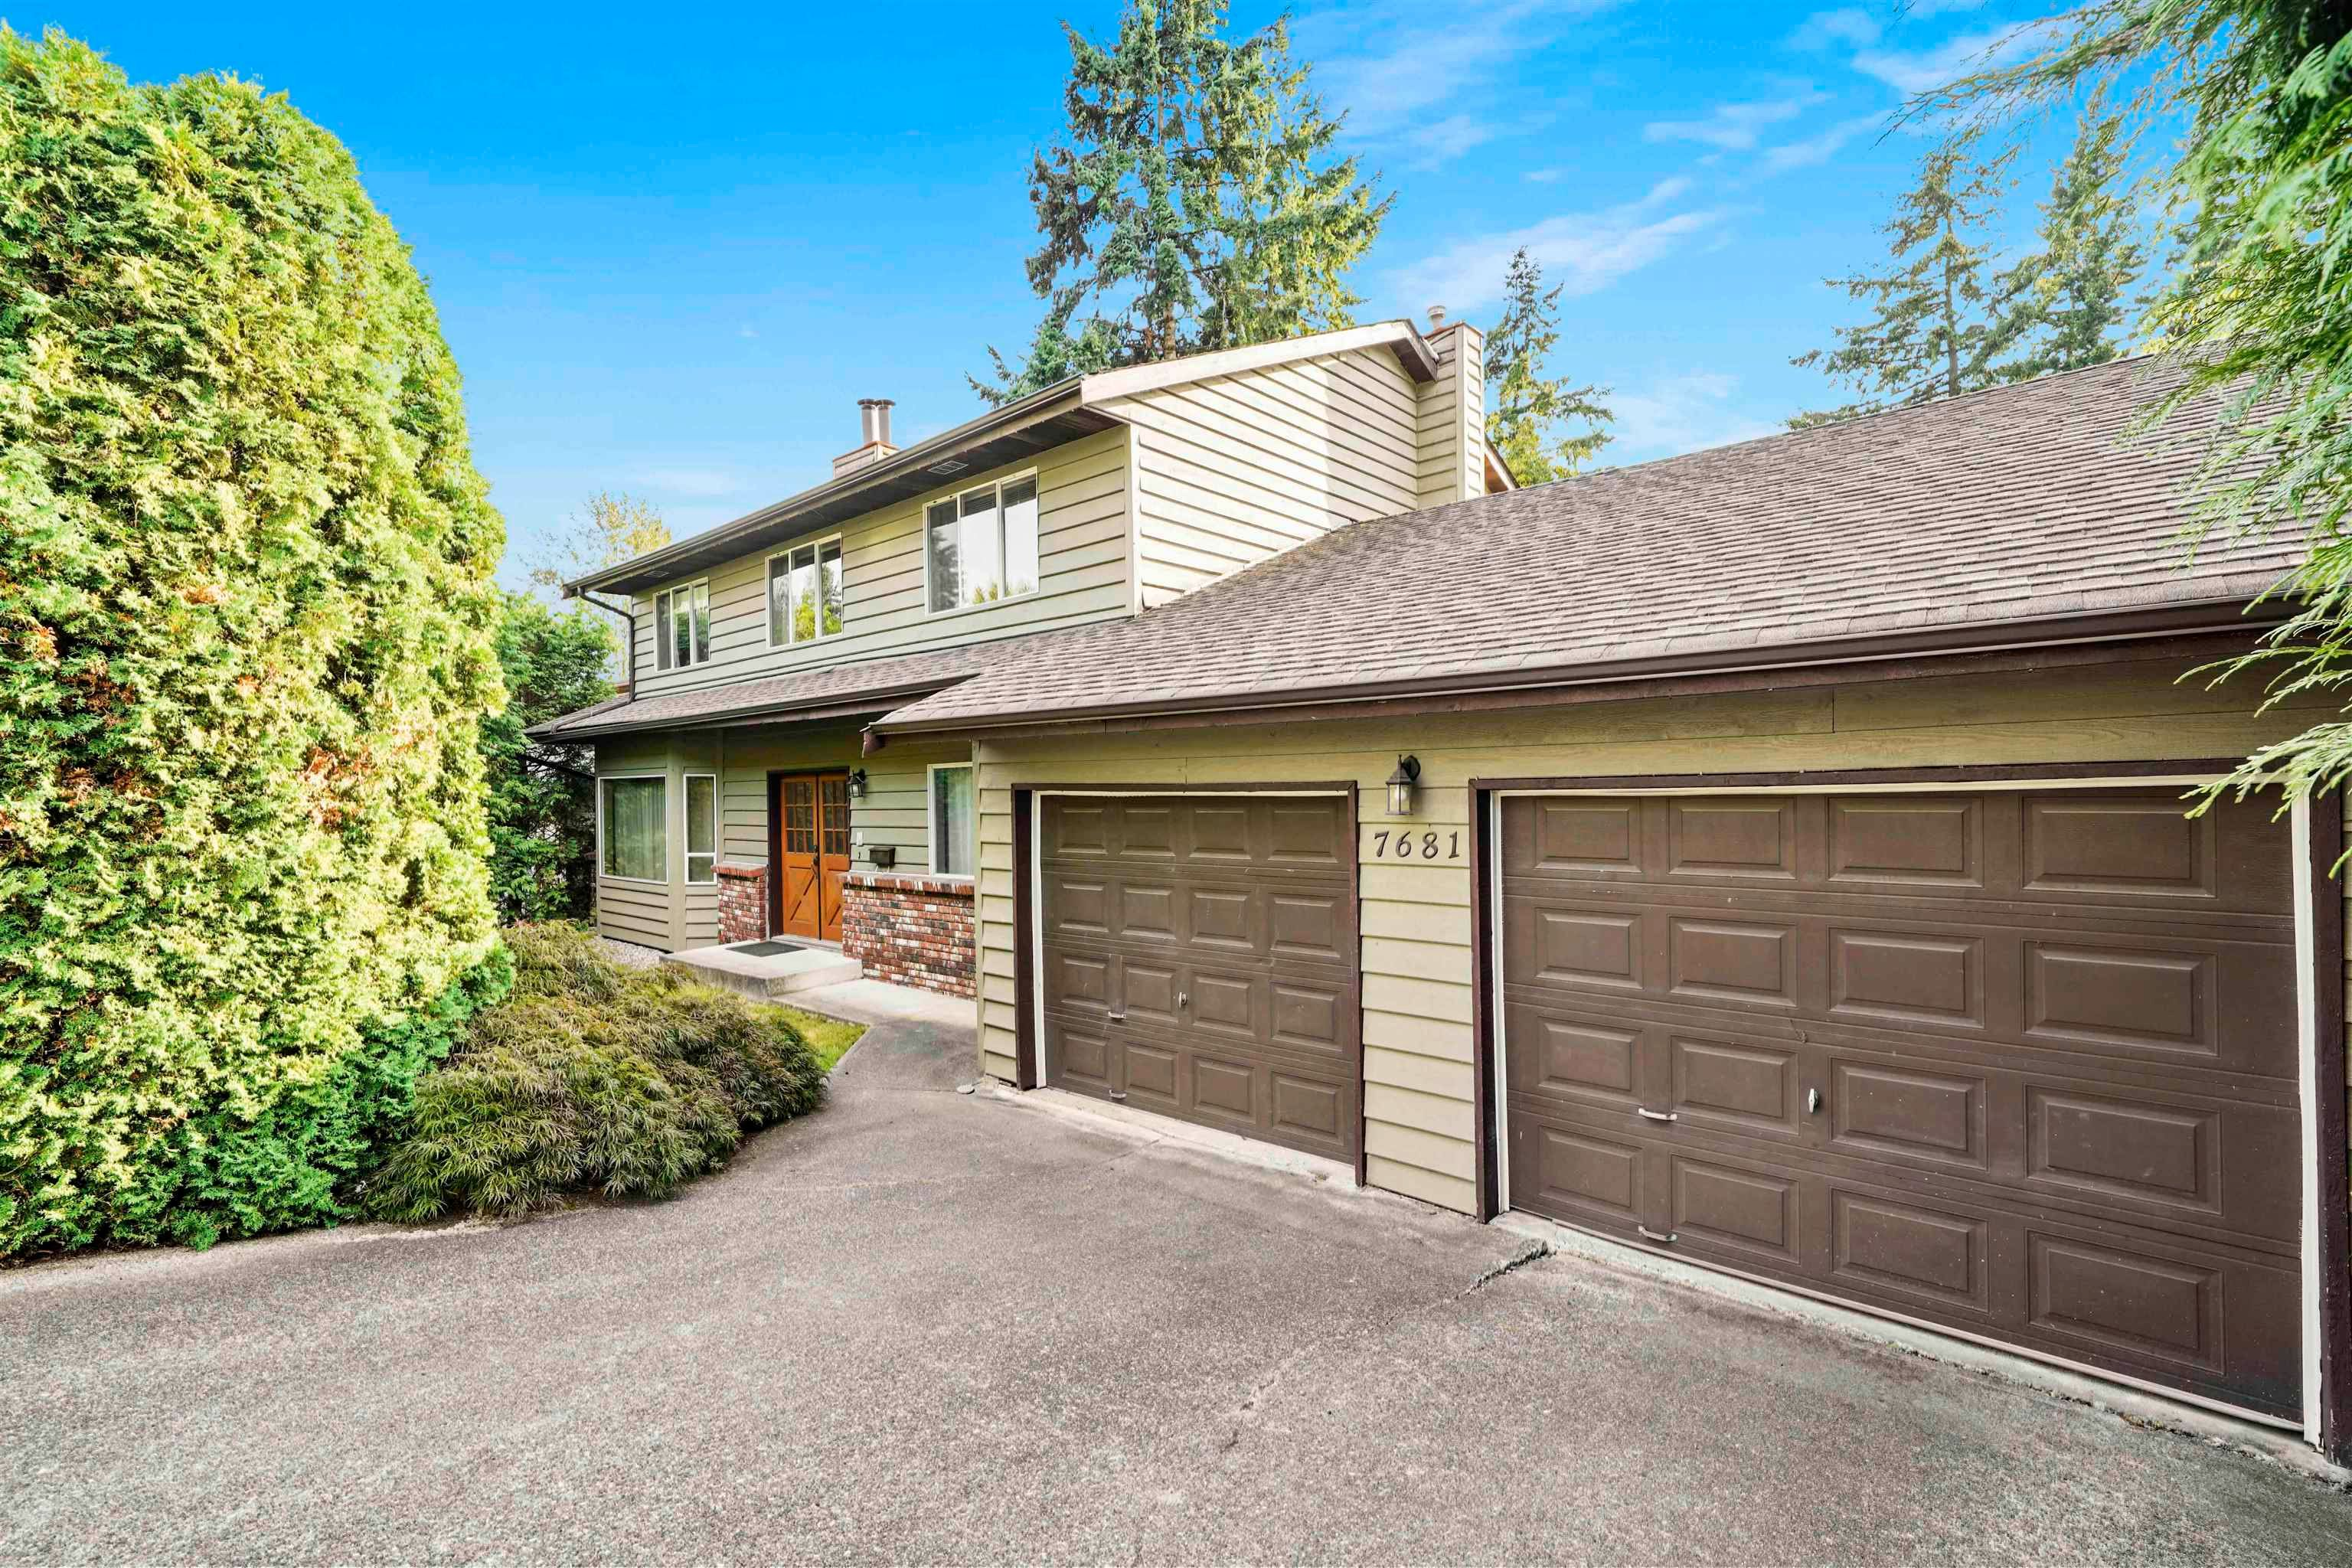 Main Photo: 7681 BARRYMORE Drive in Delta: Nordel House for sale (N. Delta)  : MLS®# R2613211